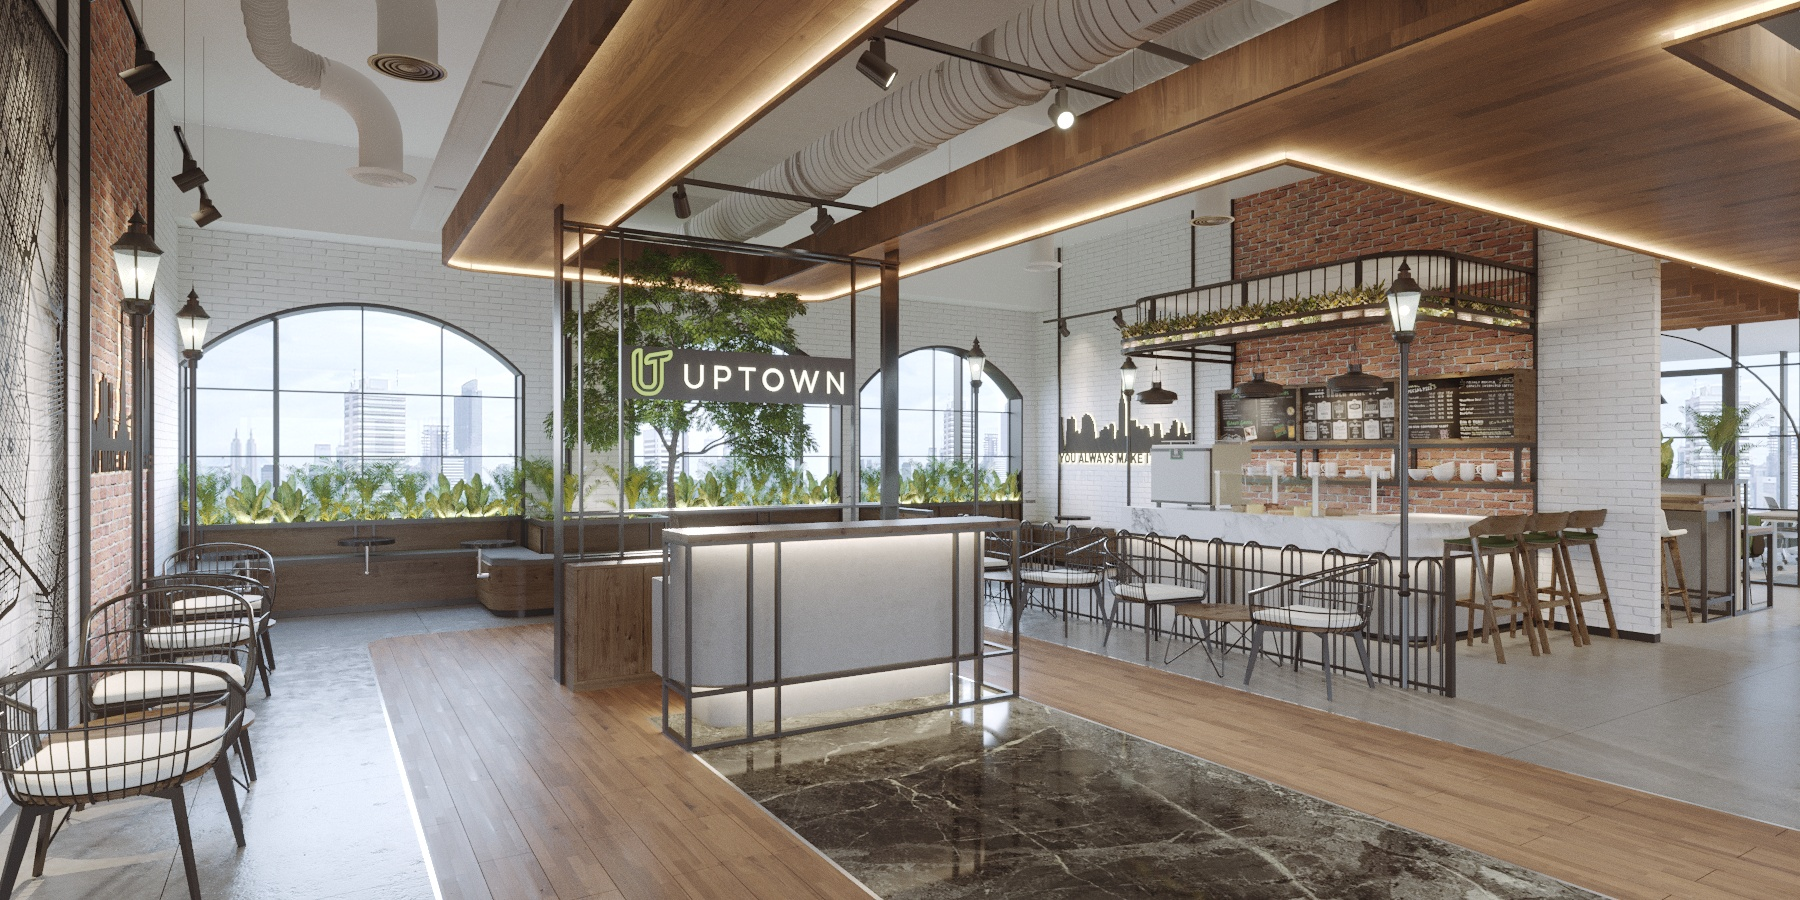 Co-working Space, an ideal and promising design of sharing workspace!